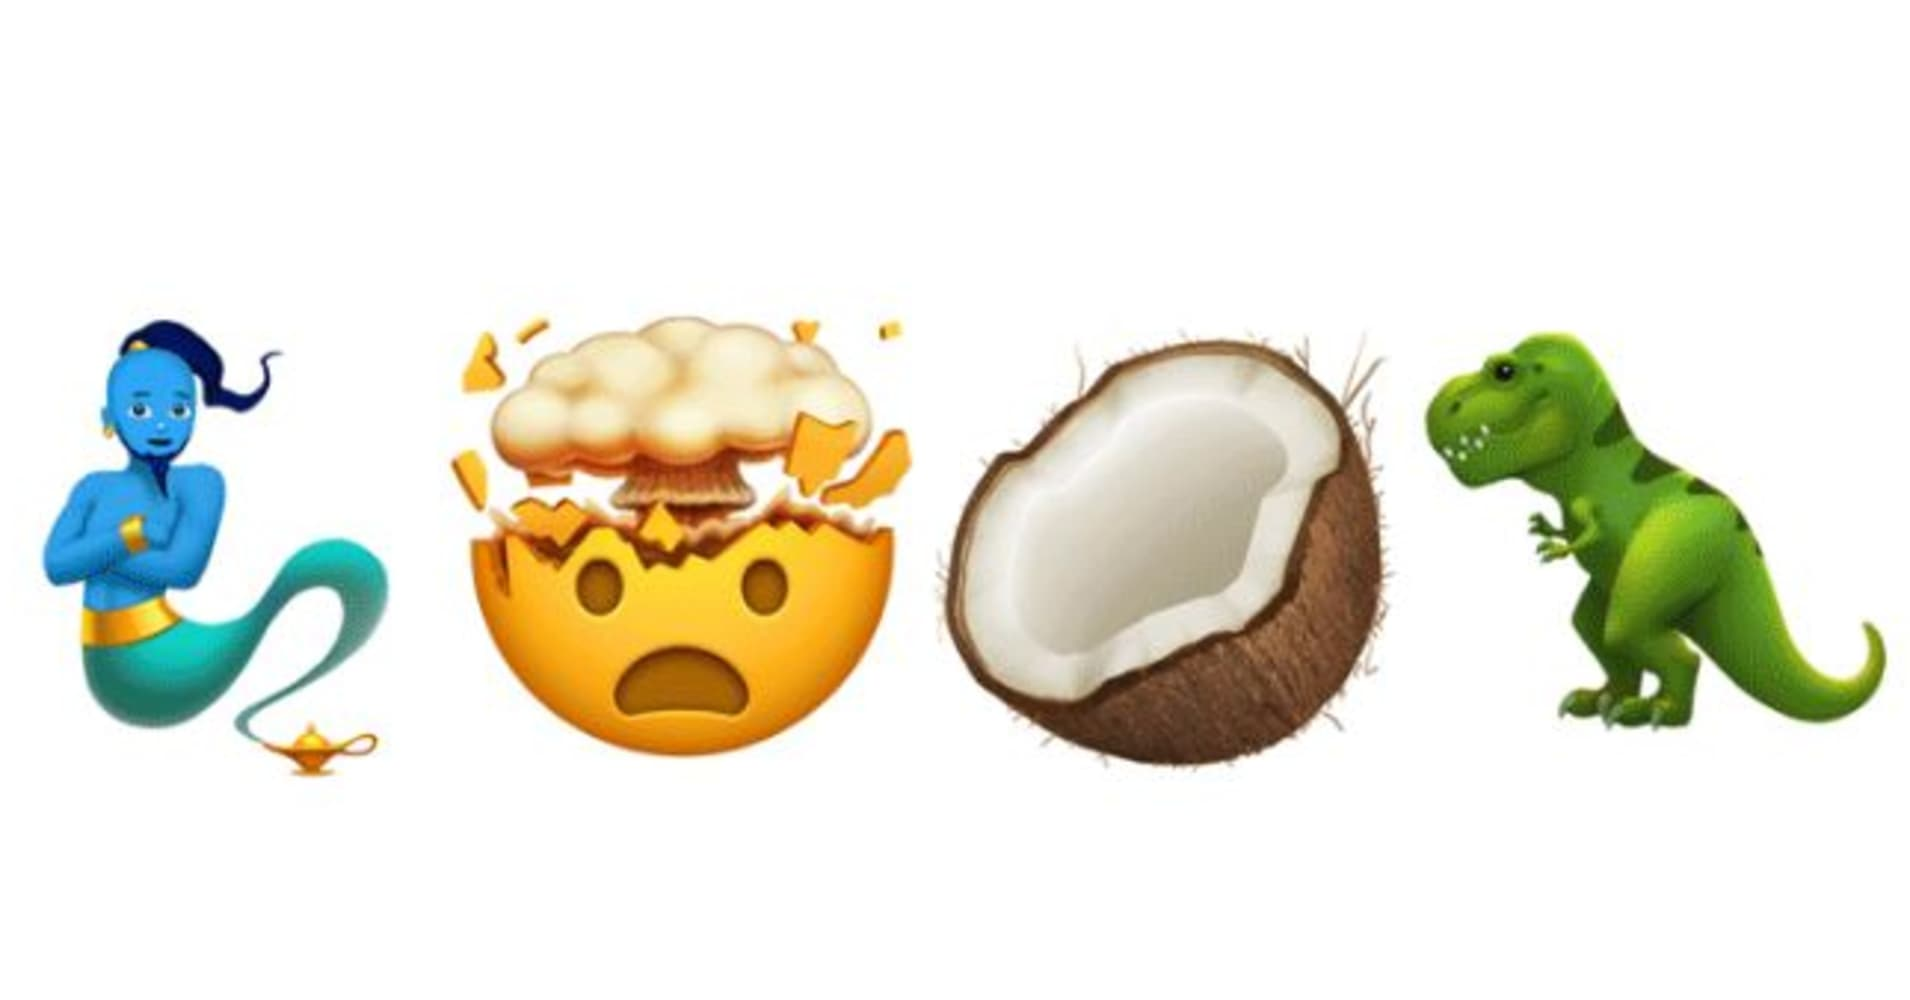 Apple previews new emojis coming to iPhone and iPad